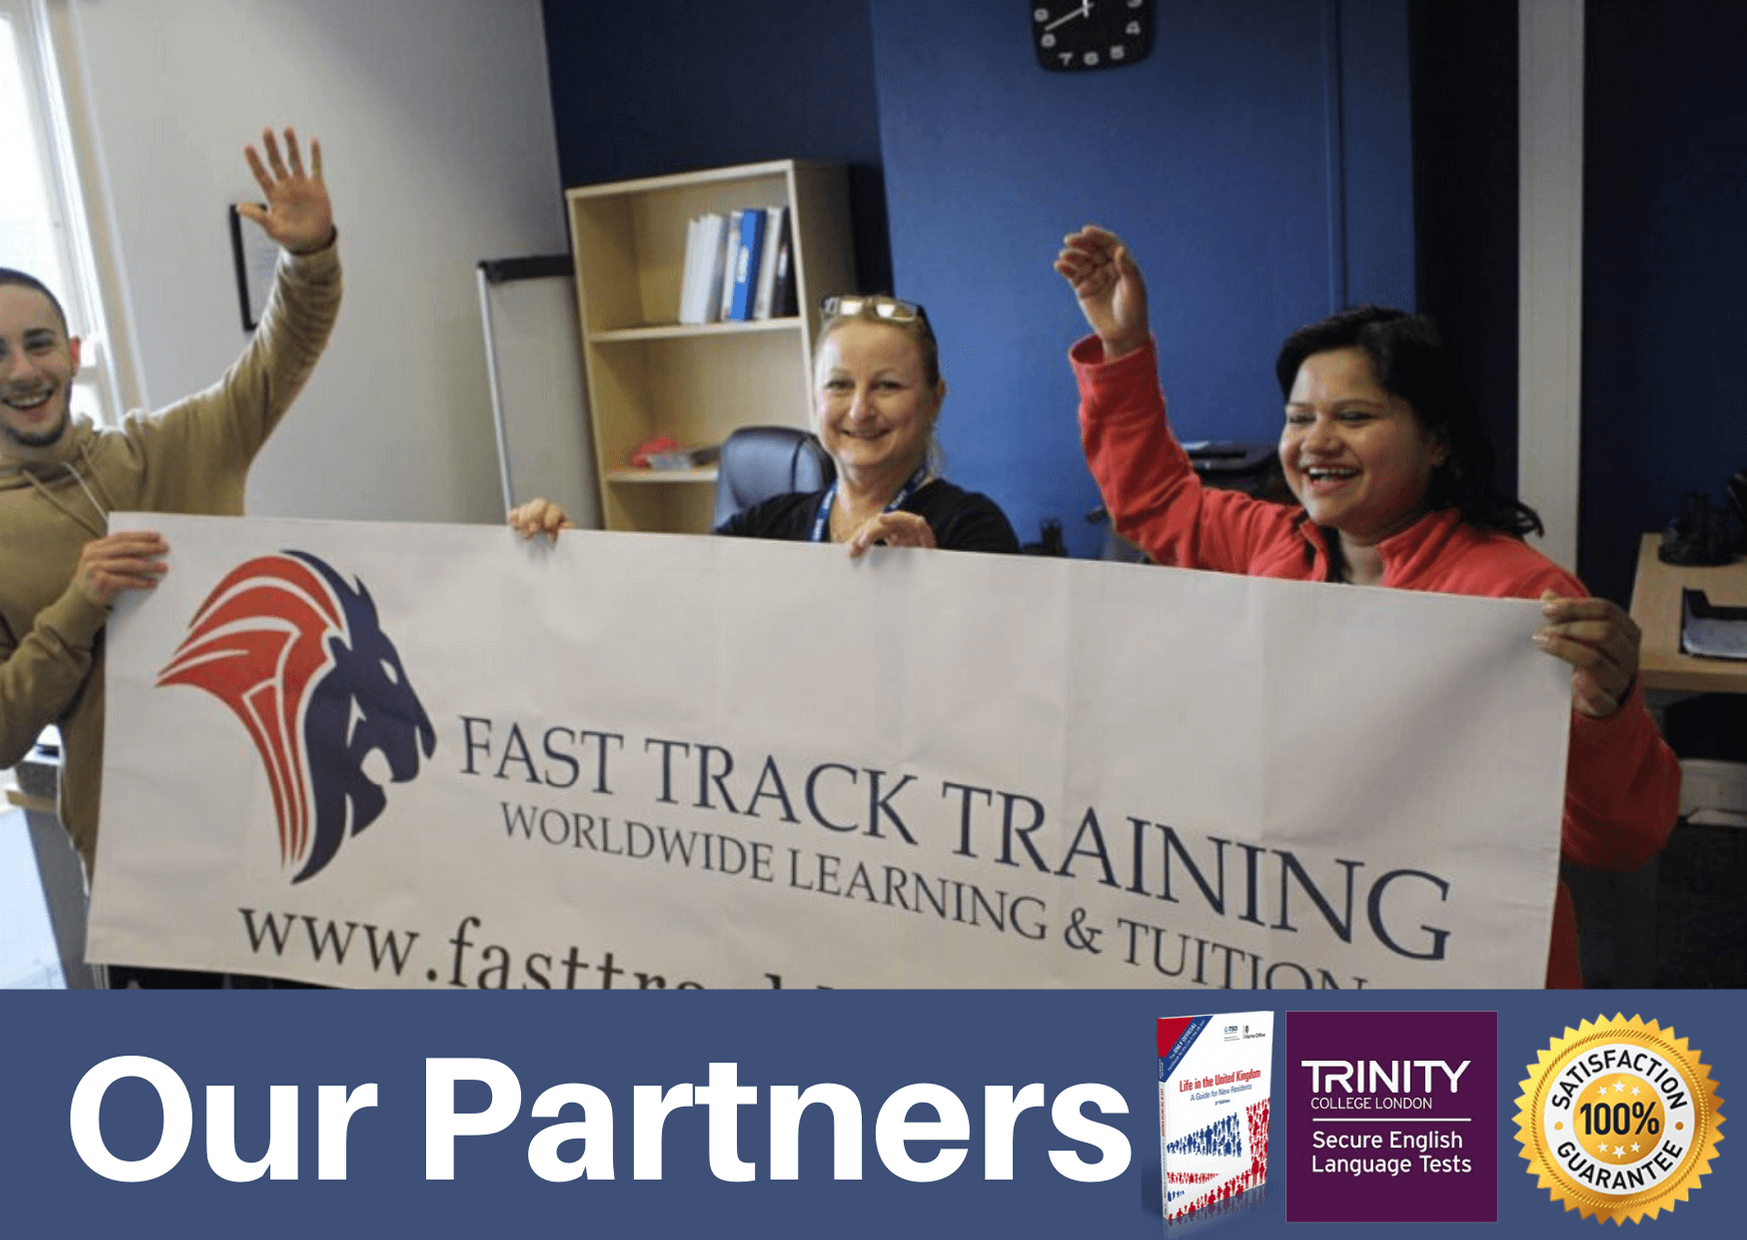 our partners are fast track training